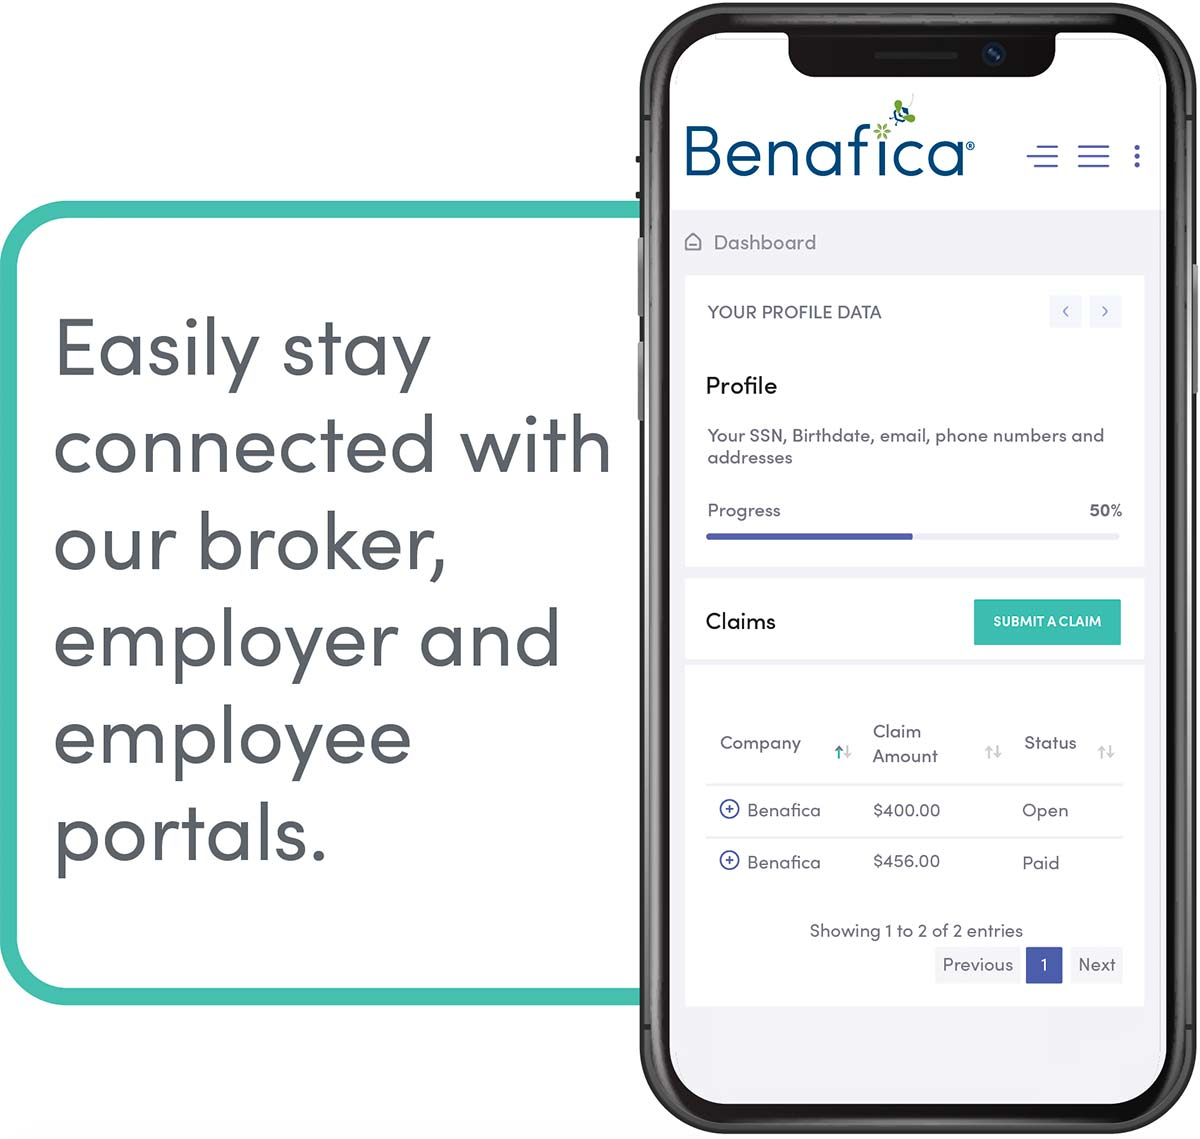 Easily stay connected with our broker, employer and employee portals.